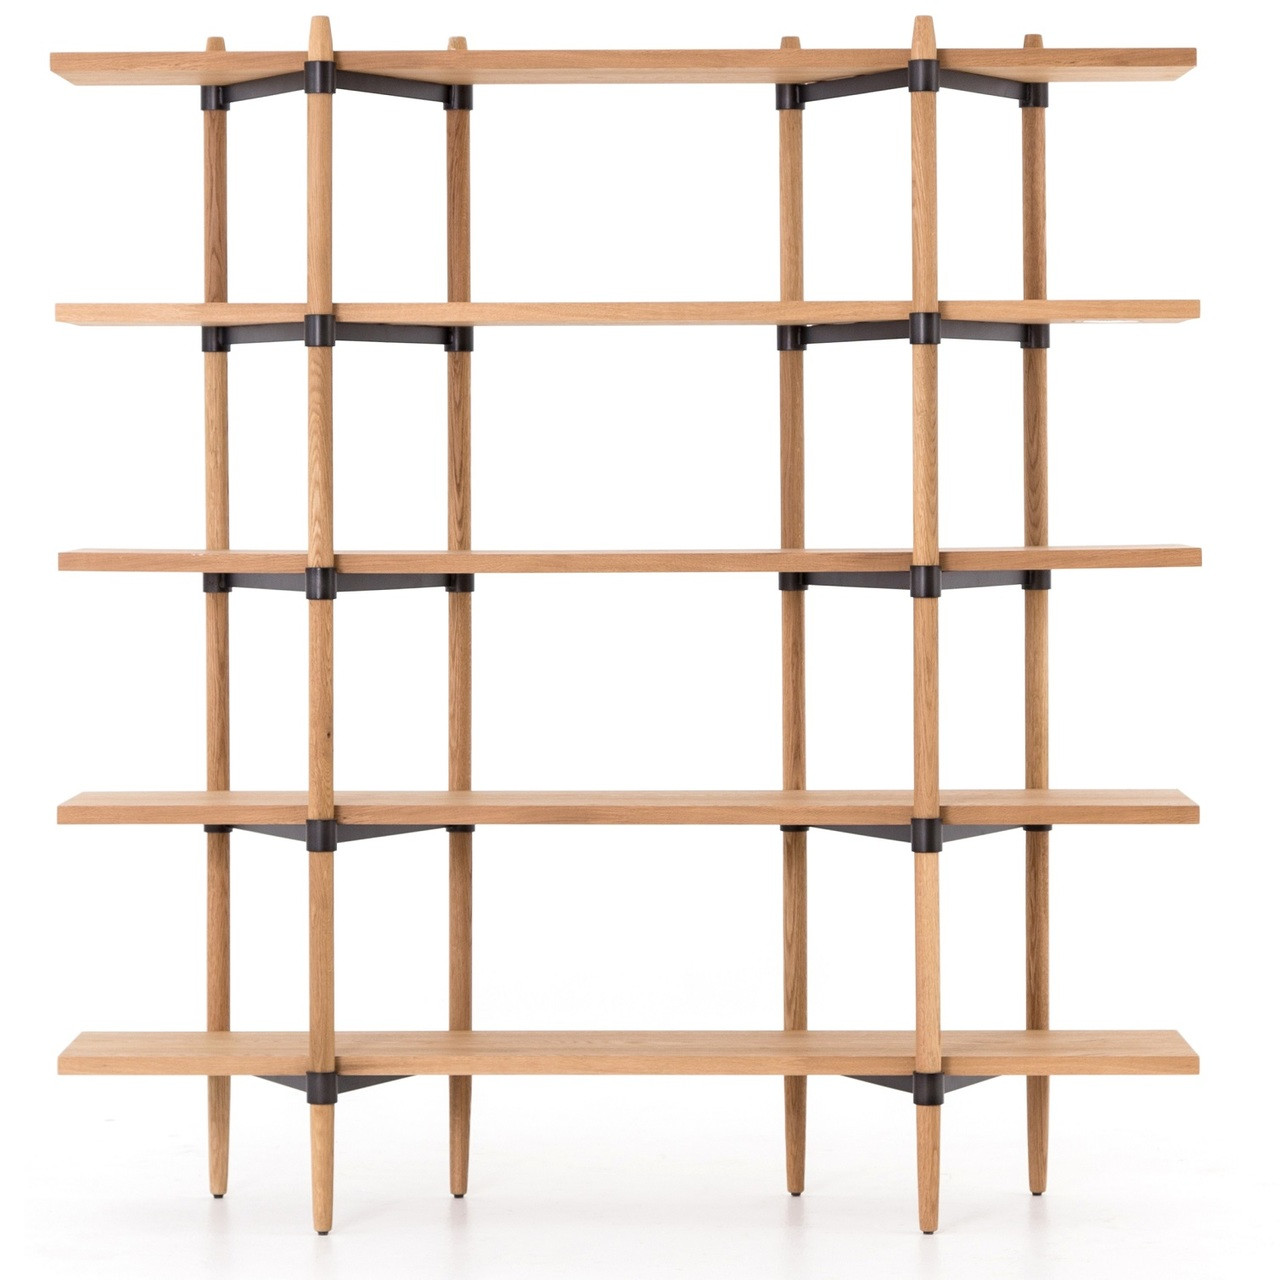 secrets front elizabeth the erika edit angle scandinavian design oak bookshelf interior low brosa bookcase wooden products